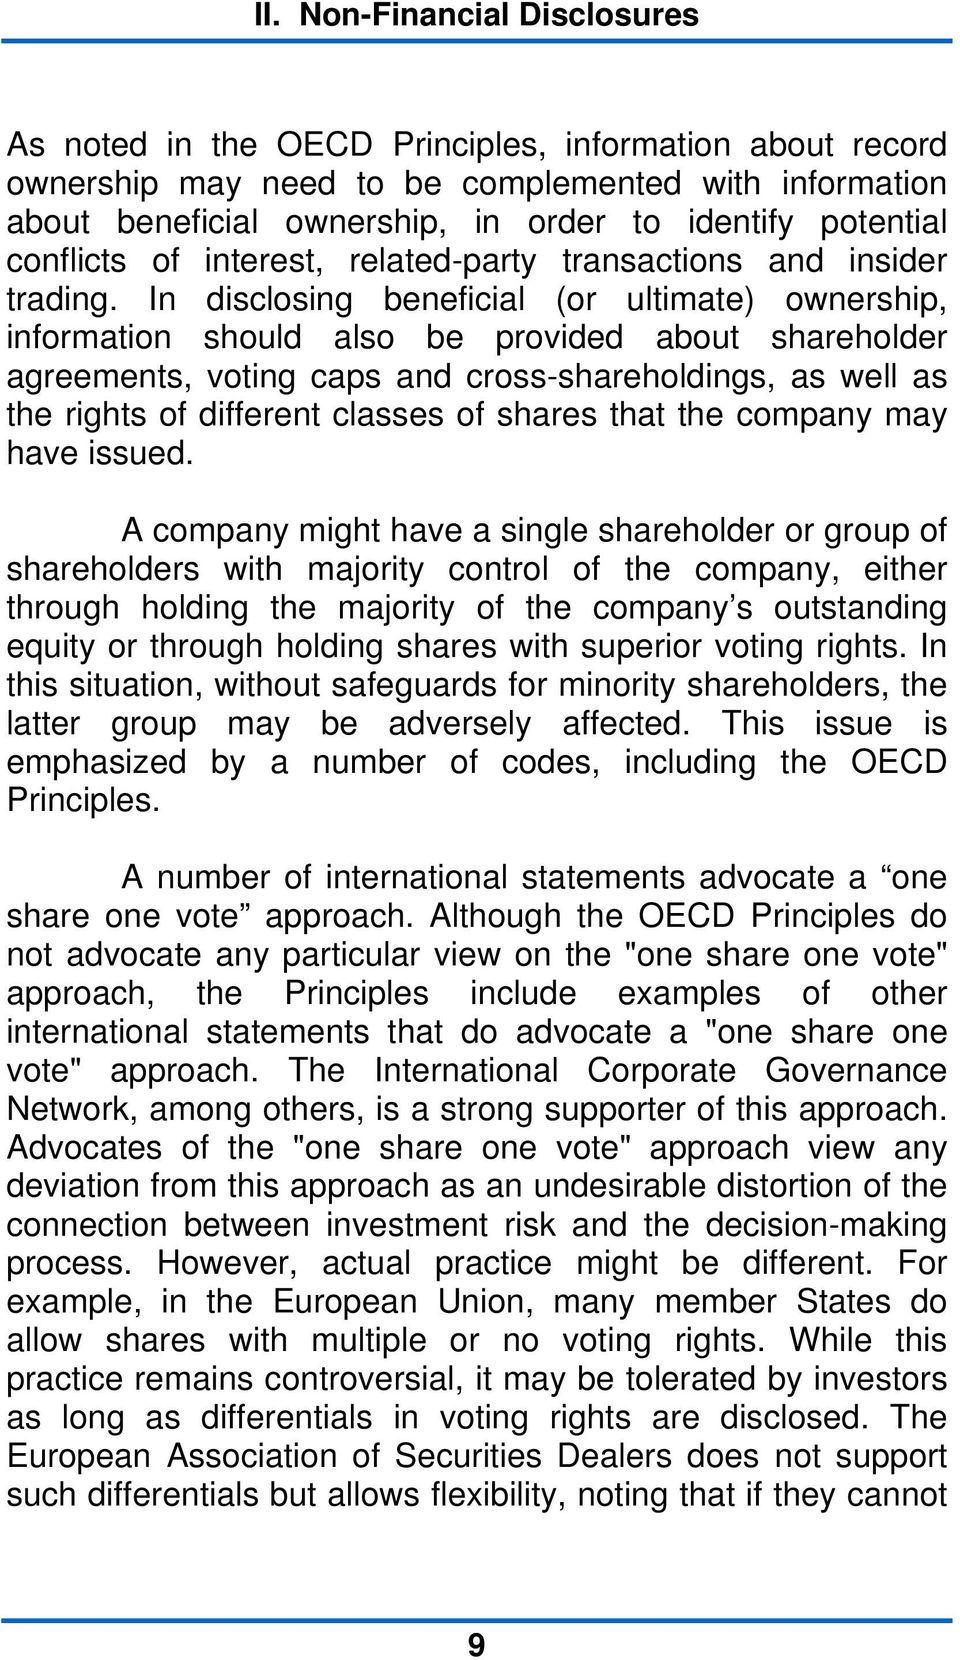 In disclosing beneficial (or ultimate) ownership, information should also be provided about shareholder agreements, voting caps and cross-shareholdings, as well as the rights of different classes of